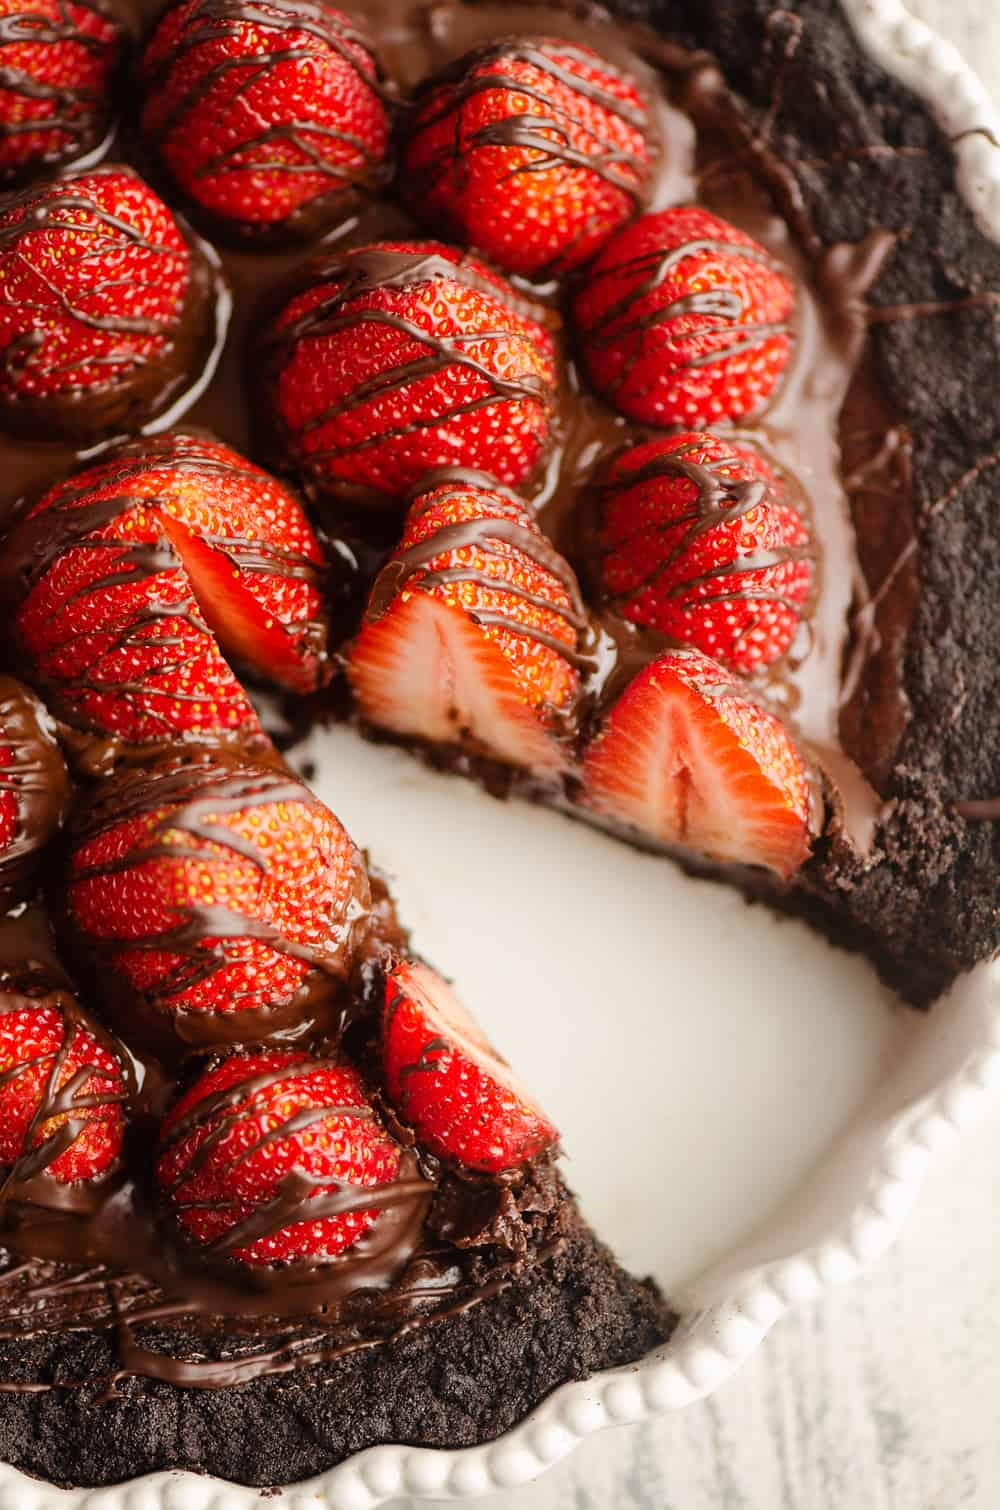 Chocolate Covered Strawberry Ganache Tart with slice removed